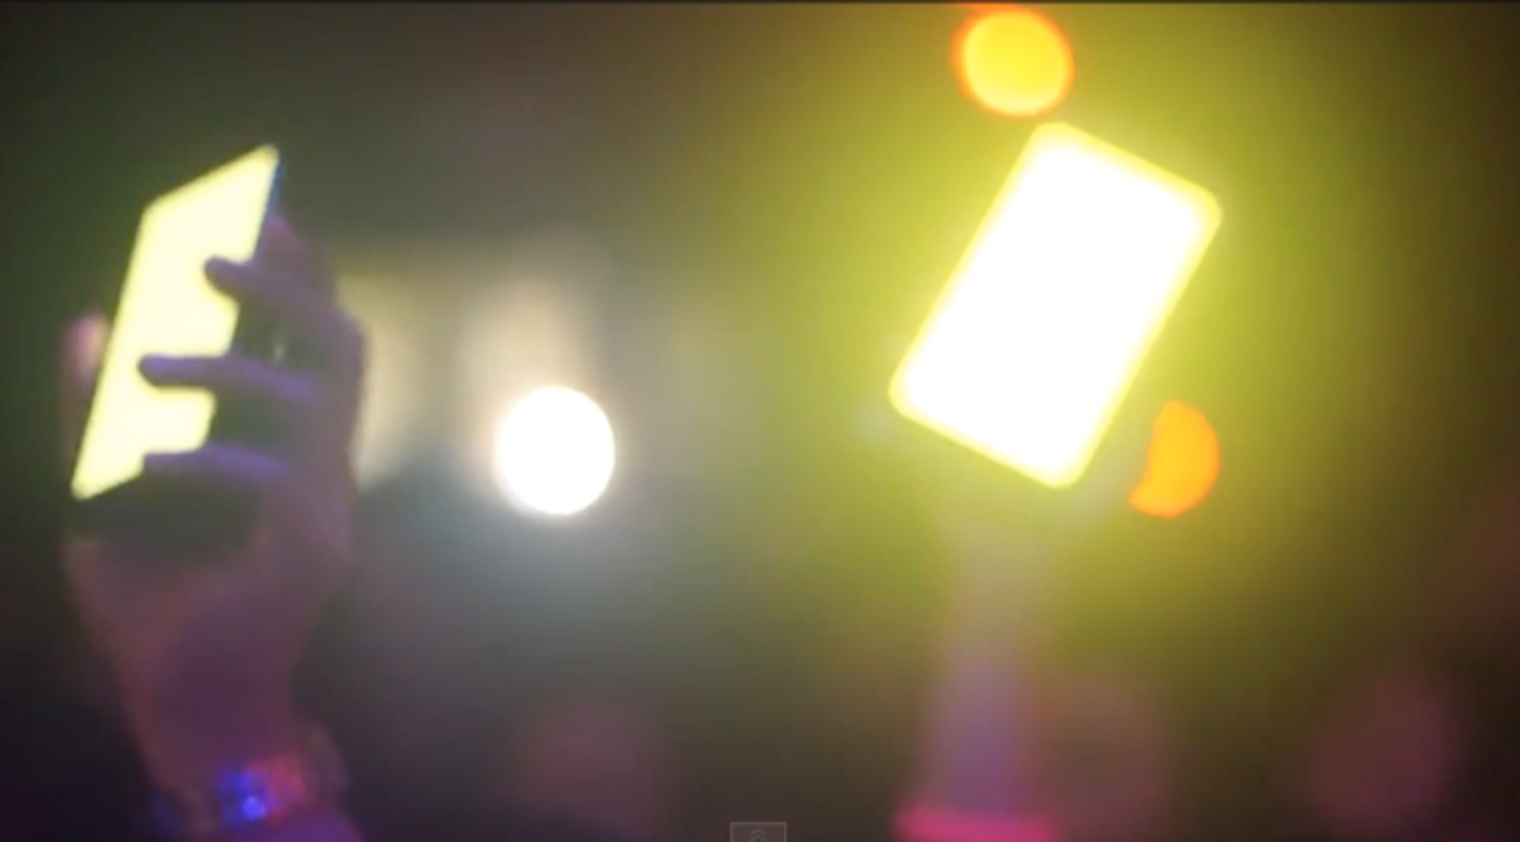 Forget Glow Sticks Phones Will Soon Light Up Concerts